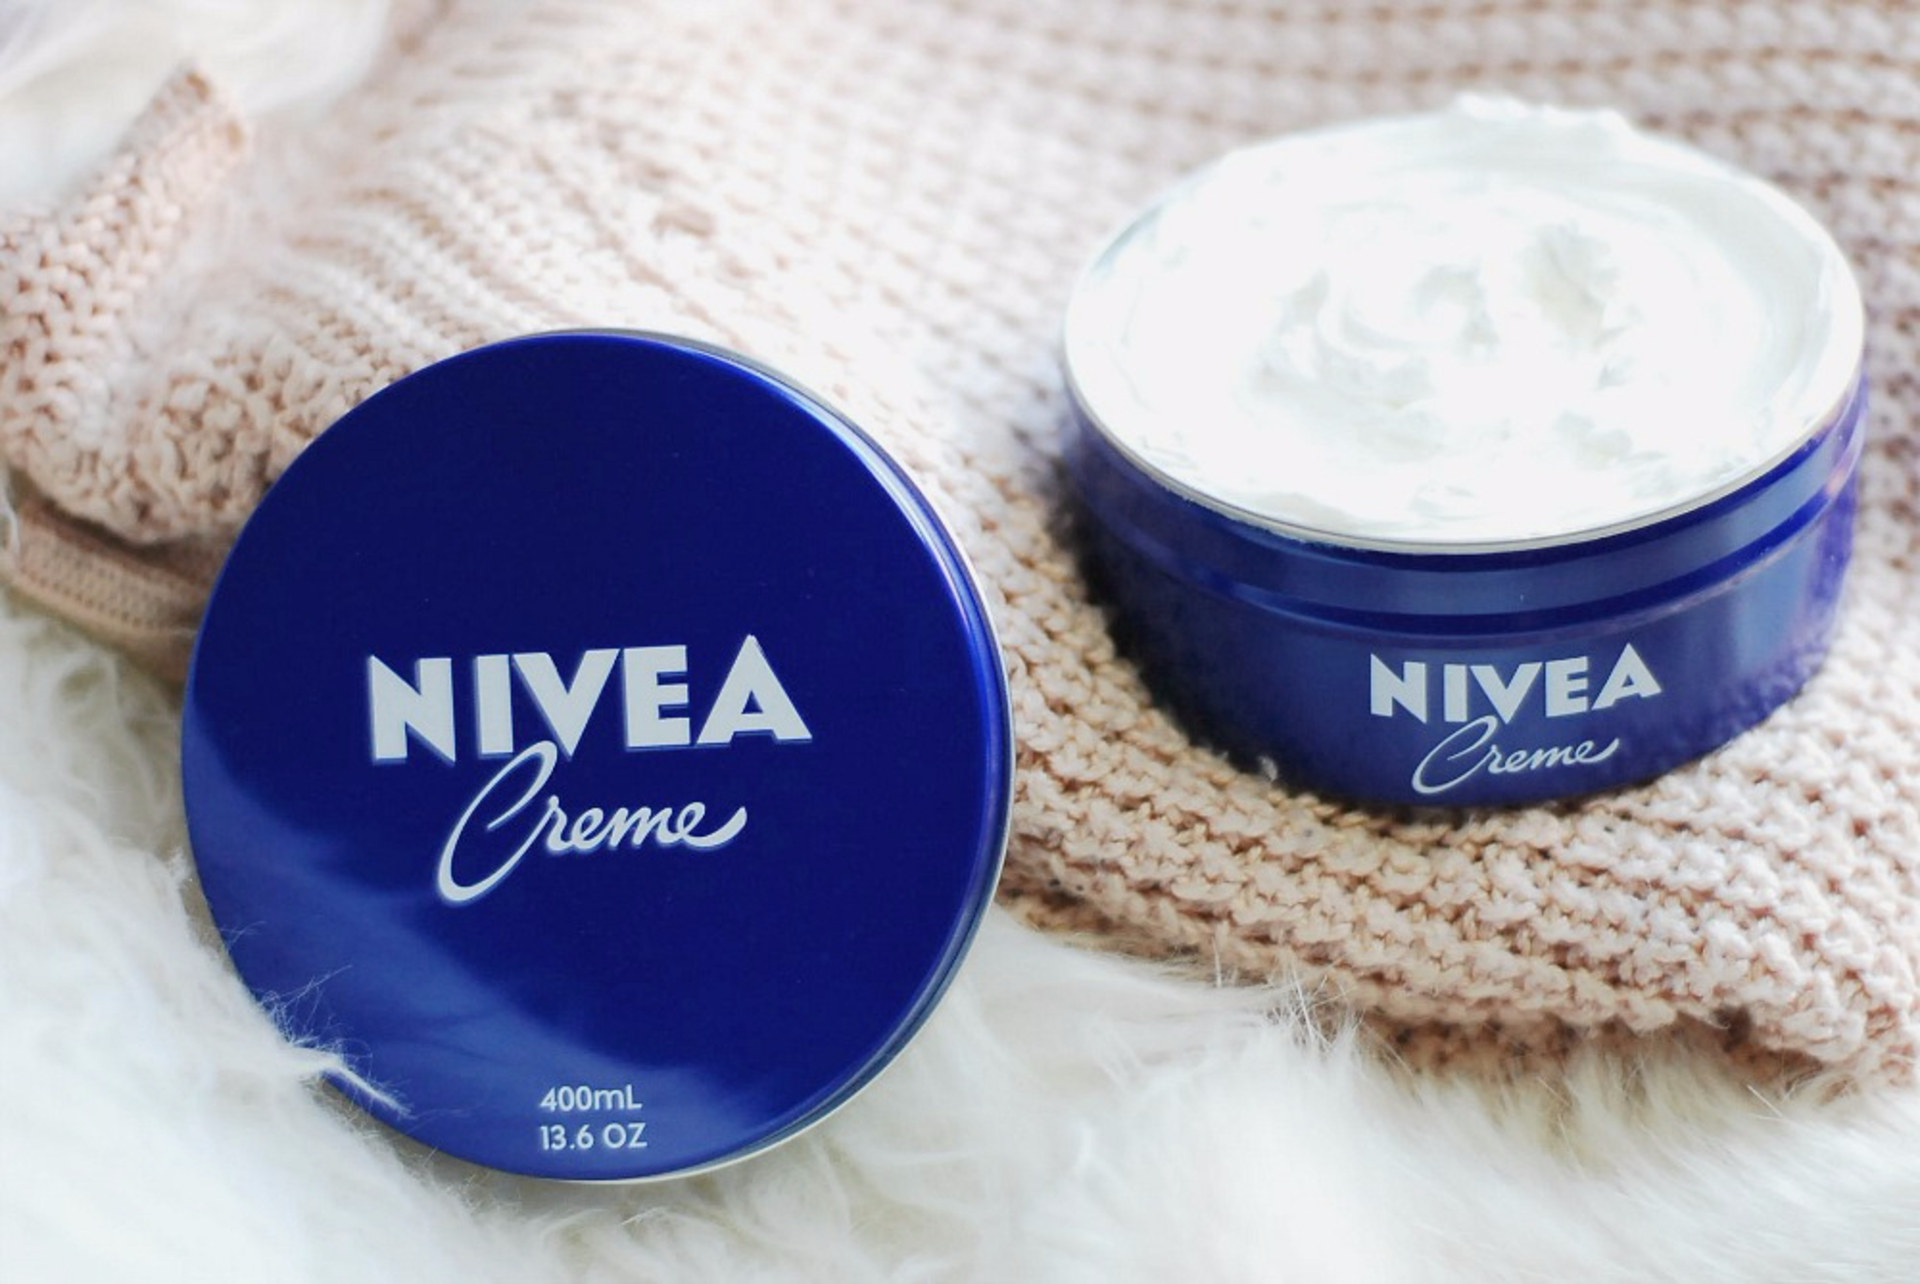 Fashion and Fusion - nivea-creme-review-and-uses